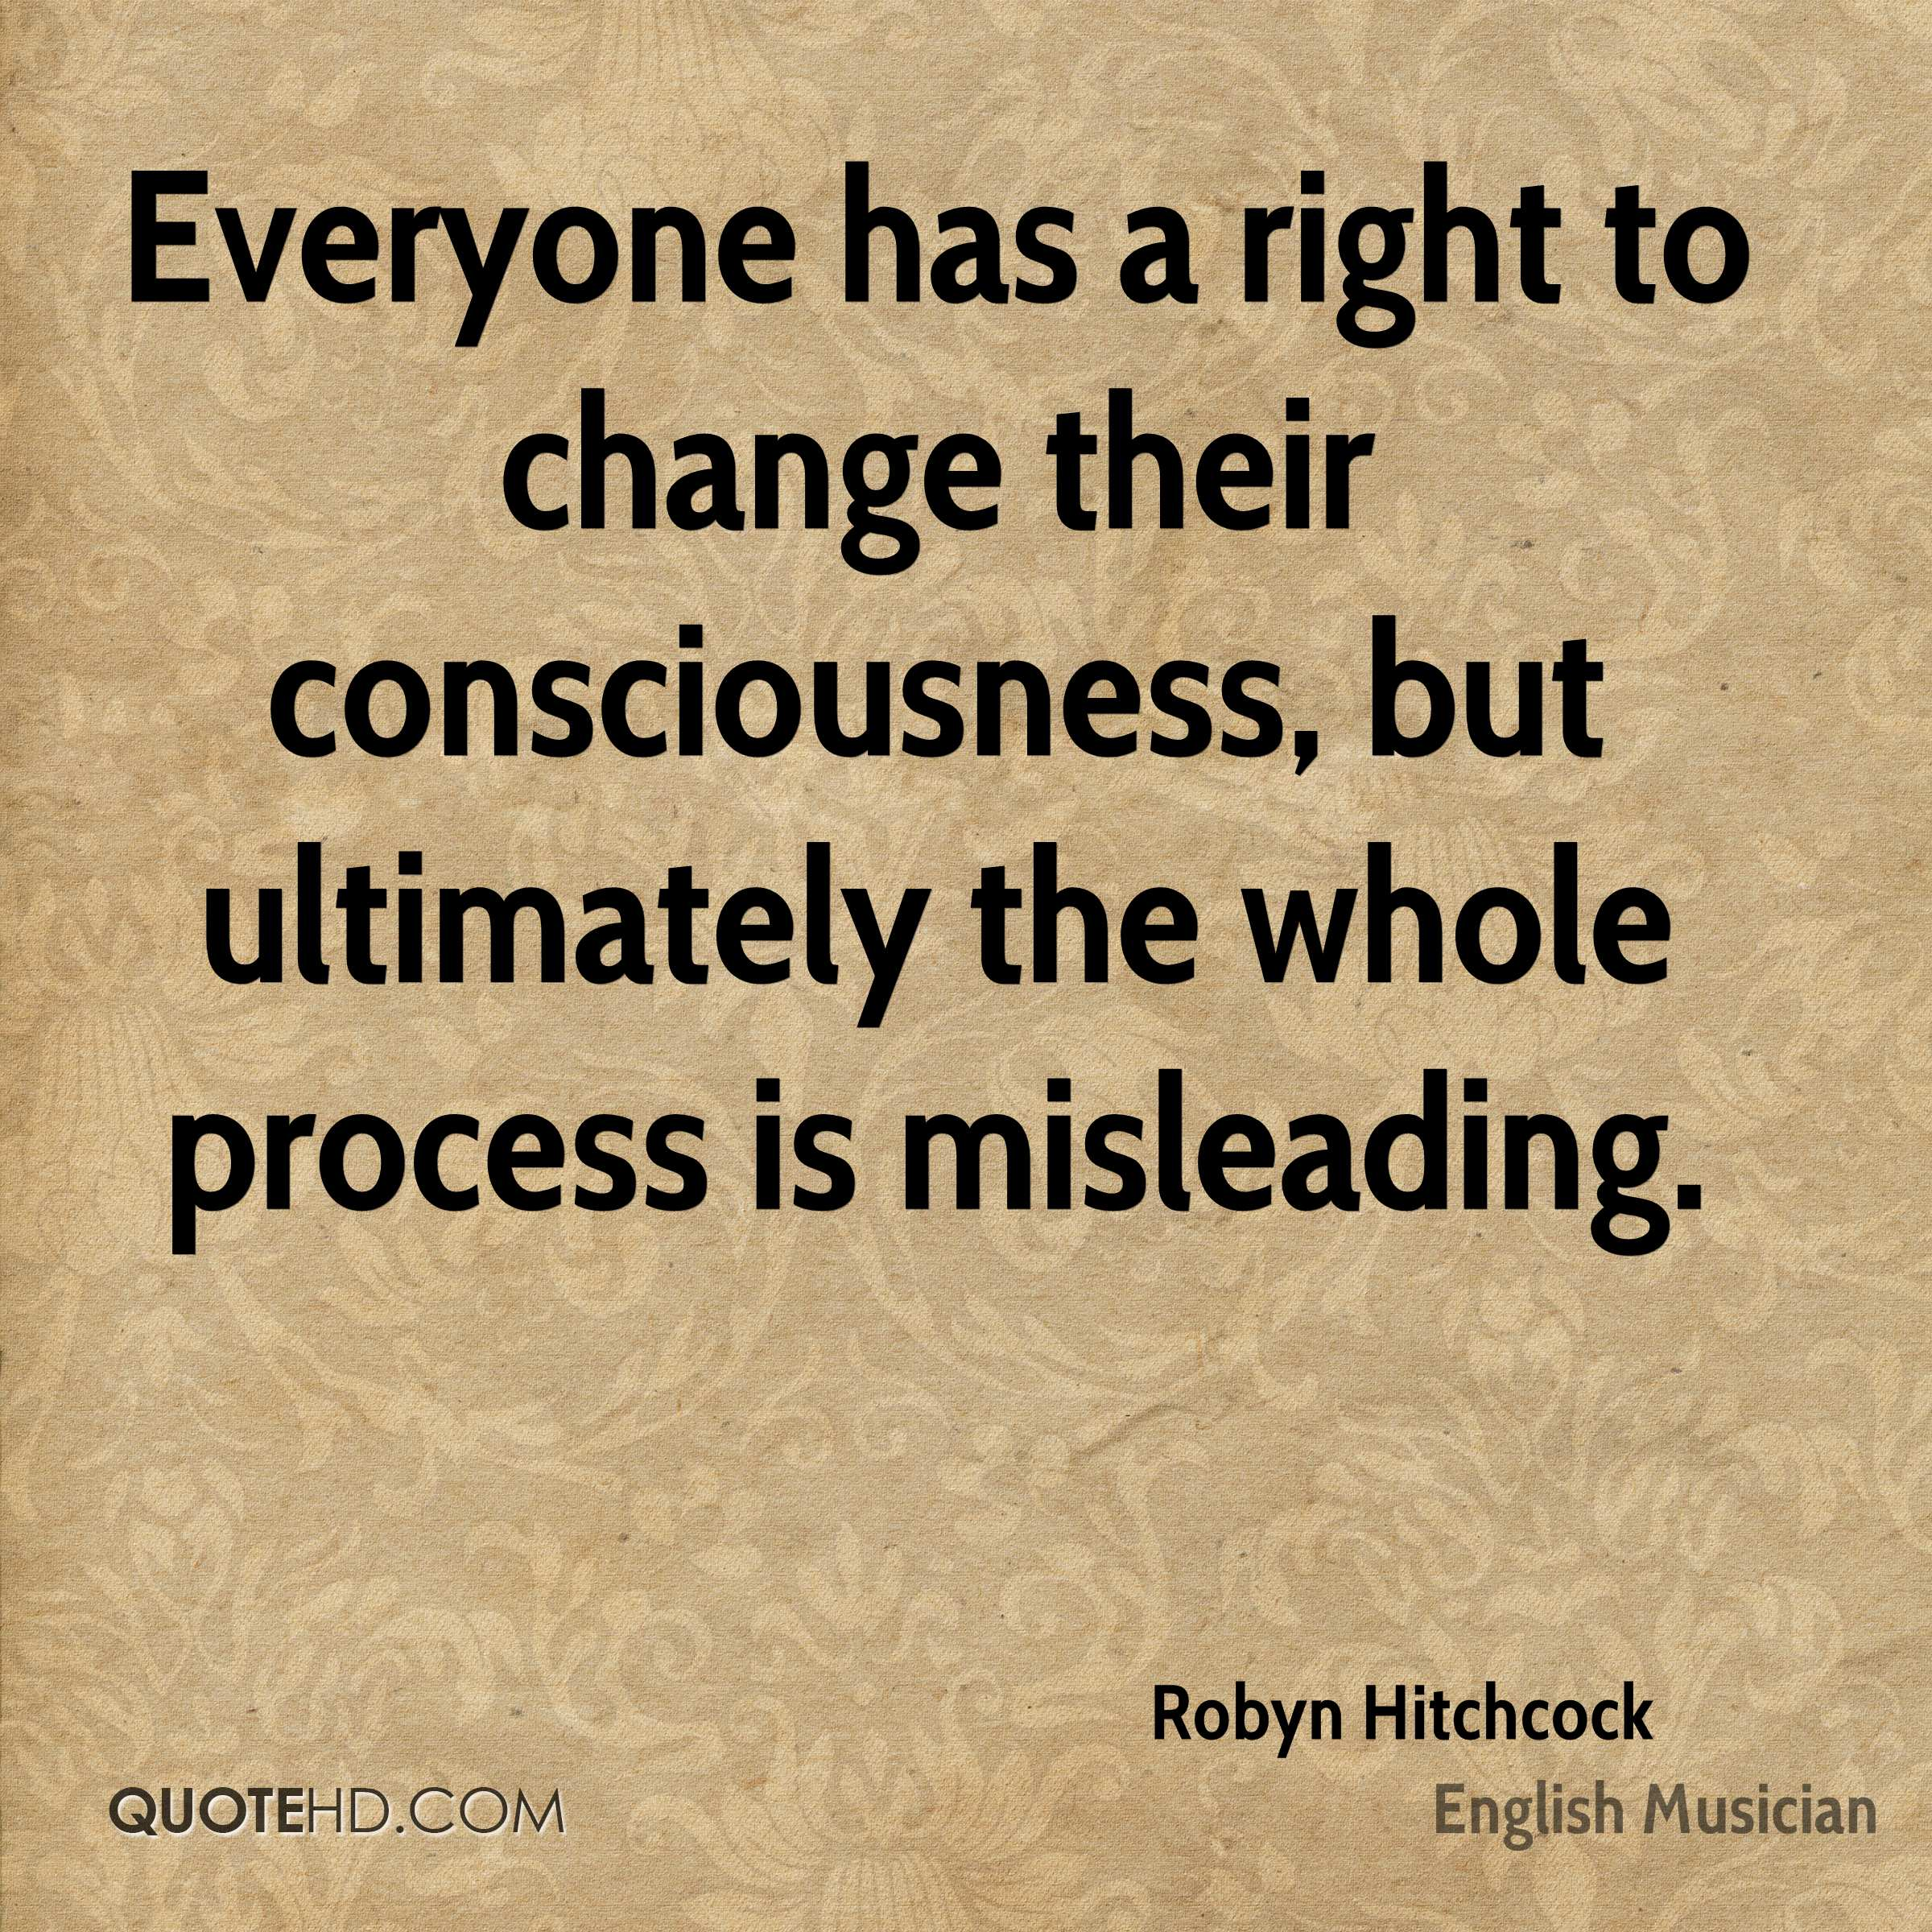 Everyone has a right to change their consciousness, but ultimately the whole process is misleading.